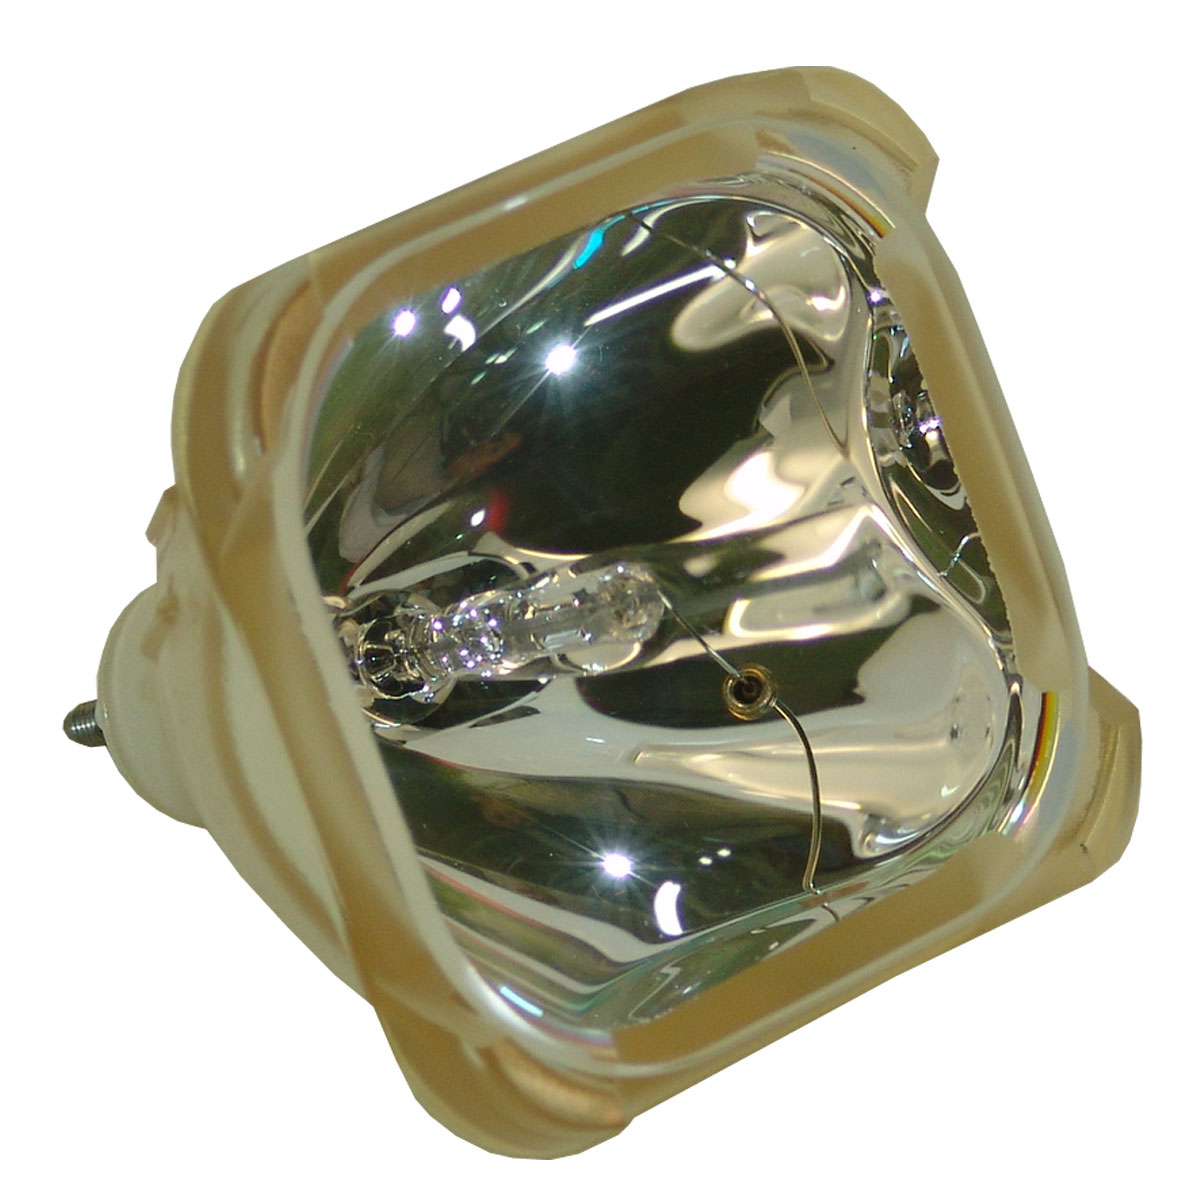 Lutema Economy Bulb for Philips LC4441/99 Projector (Lamp with Housing) - image 4 de 5